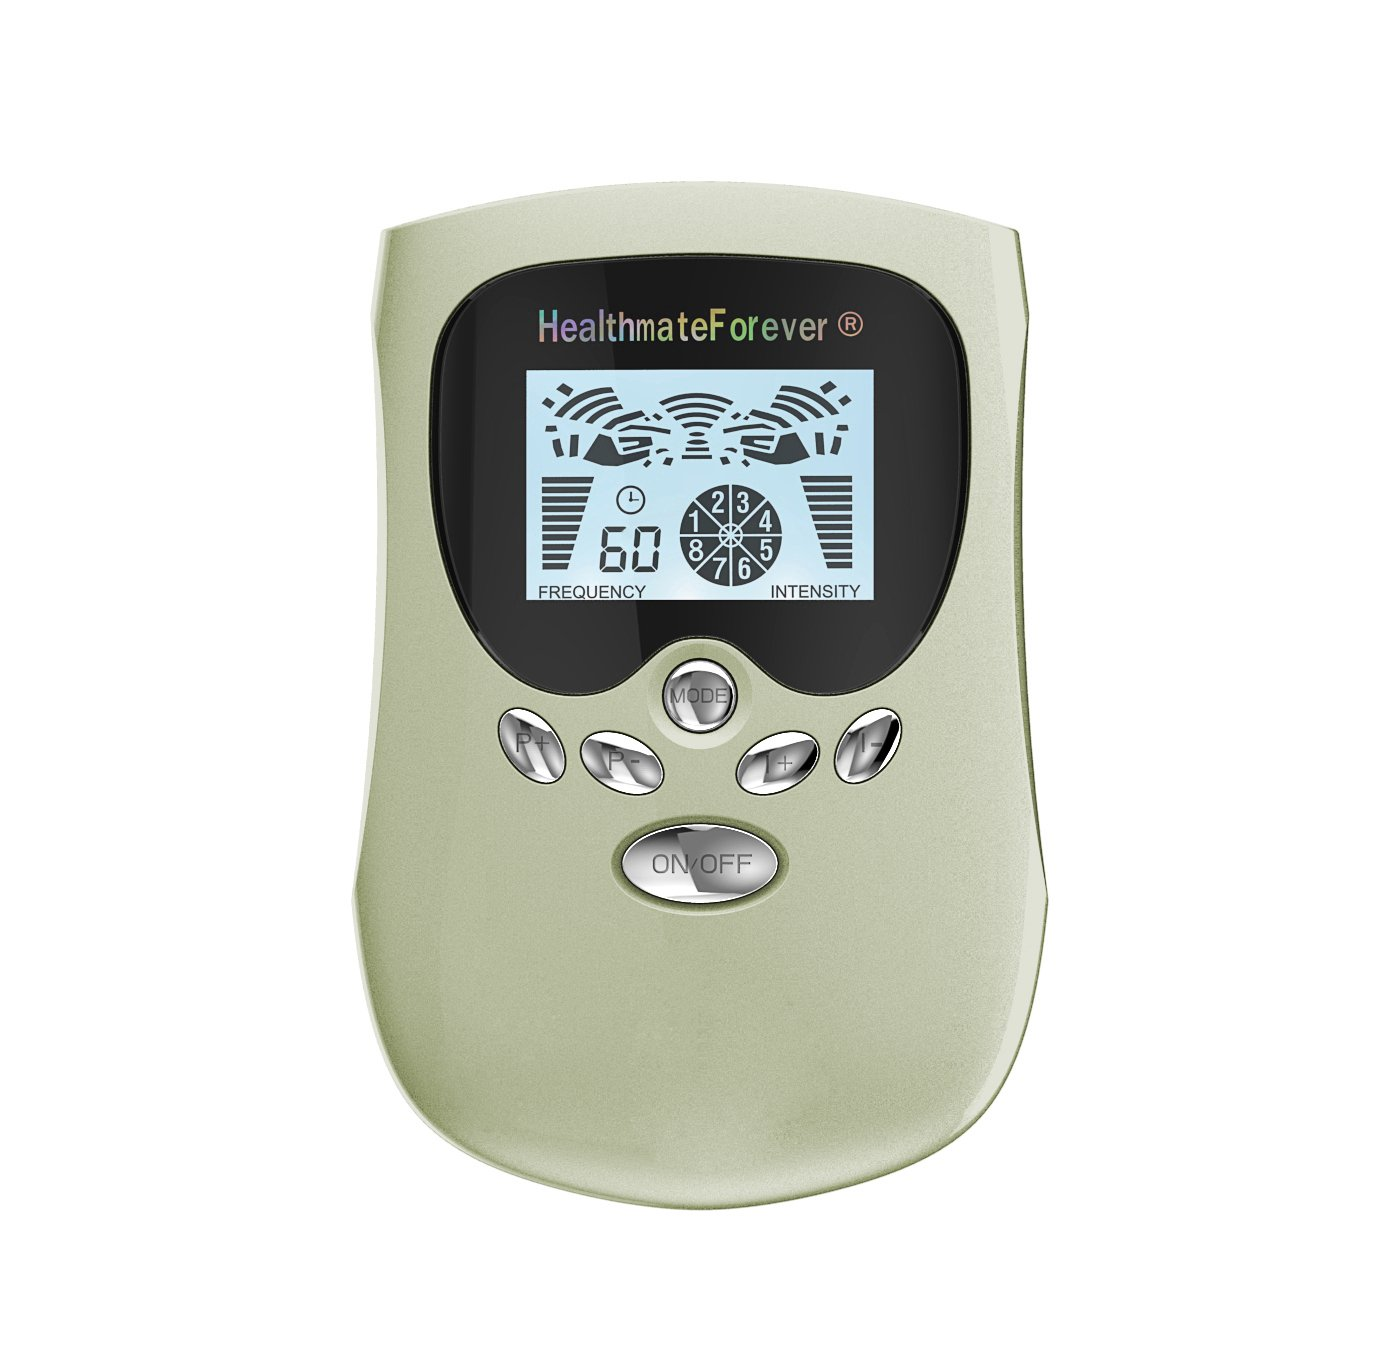 PM8 HealthmateForever TENS Unit Electrical Muscle Stimulator Green + 4in1 Leads Wire and 1 Pair of P